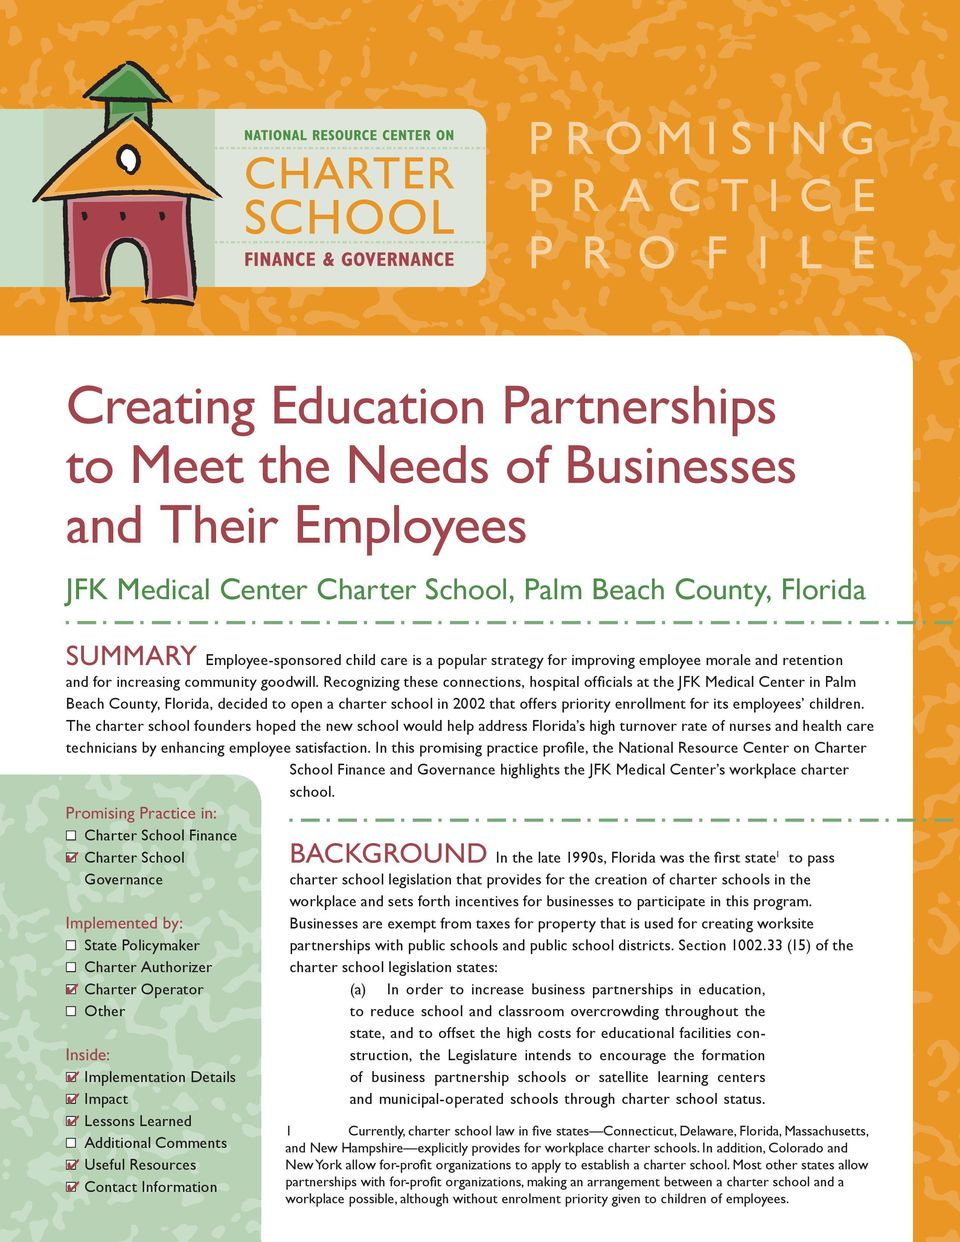 Recognizing these connections, hospital offi cials at the JFK Medical Center in Palm Beach County, Florida, decided to open a charter school in 2002 that offers priority enrollment for its employees